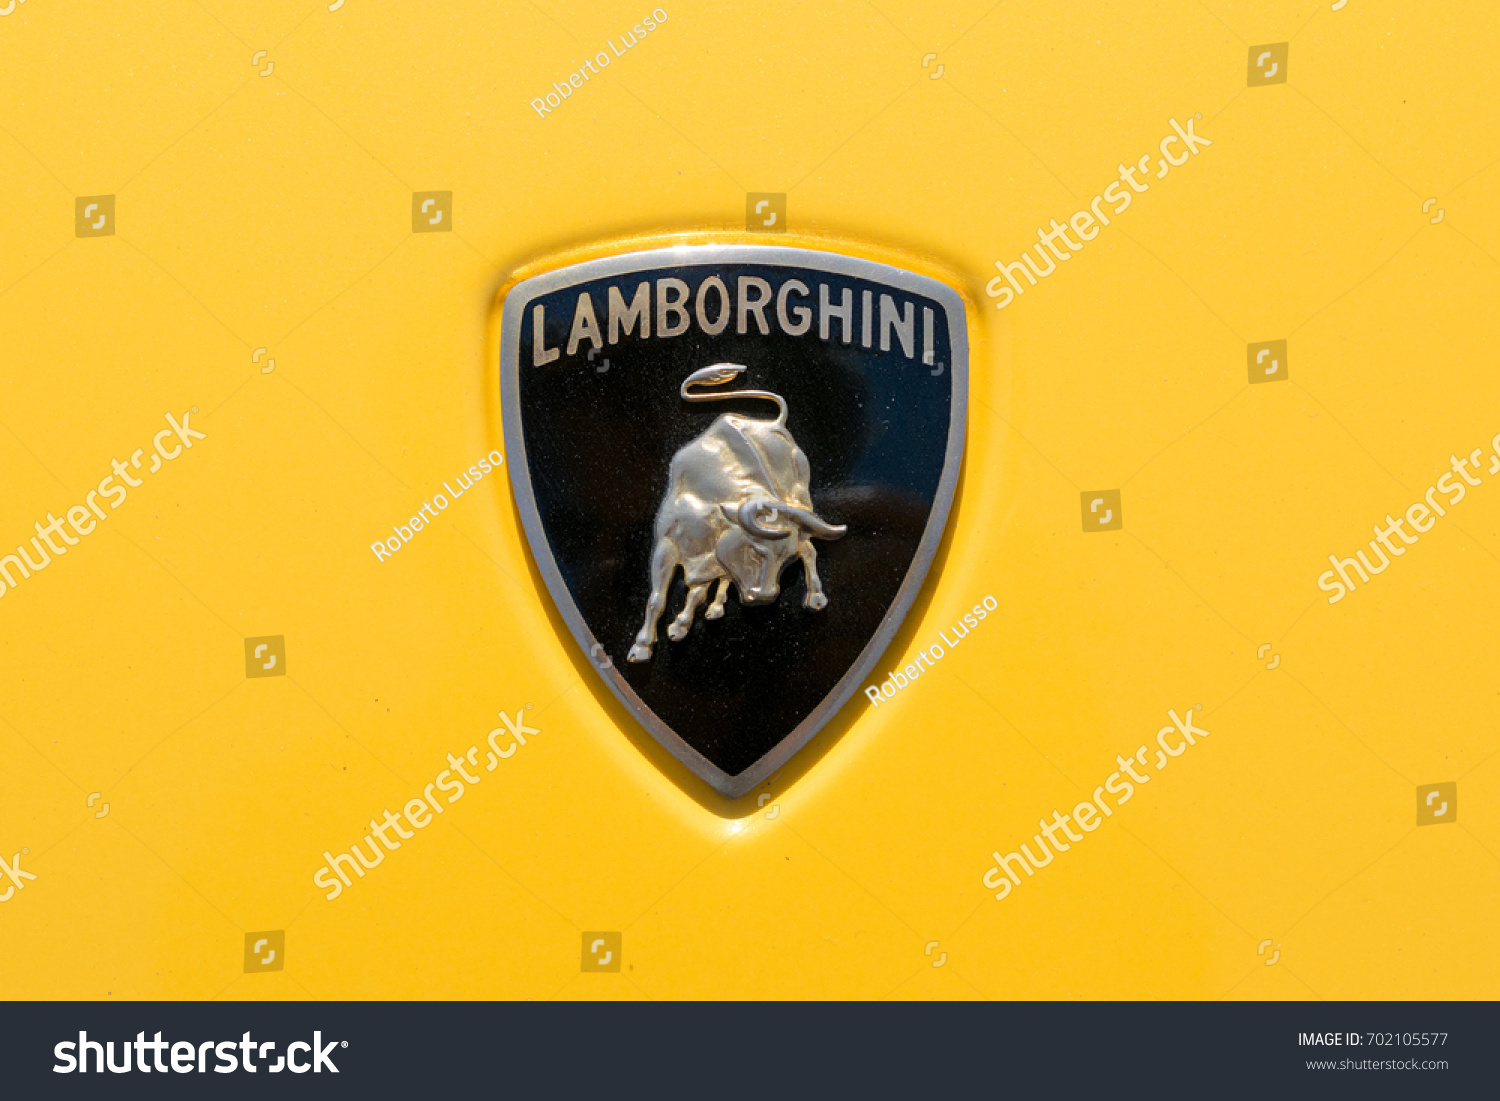 Turin Italy June 10 2017 Lamborghini Stock Photo Edit Now